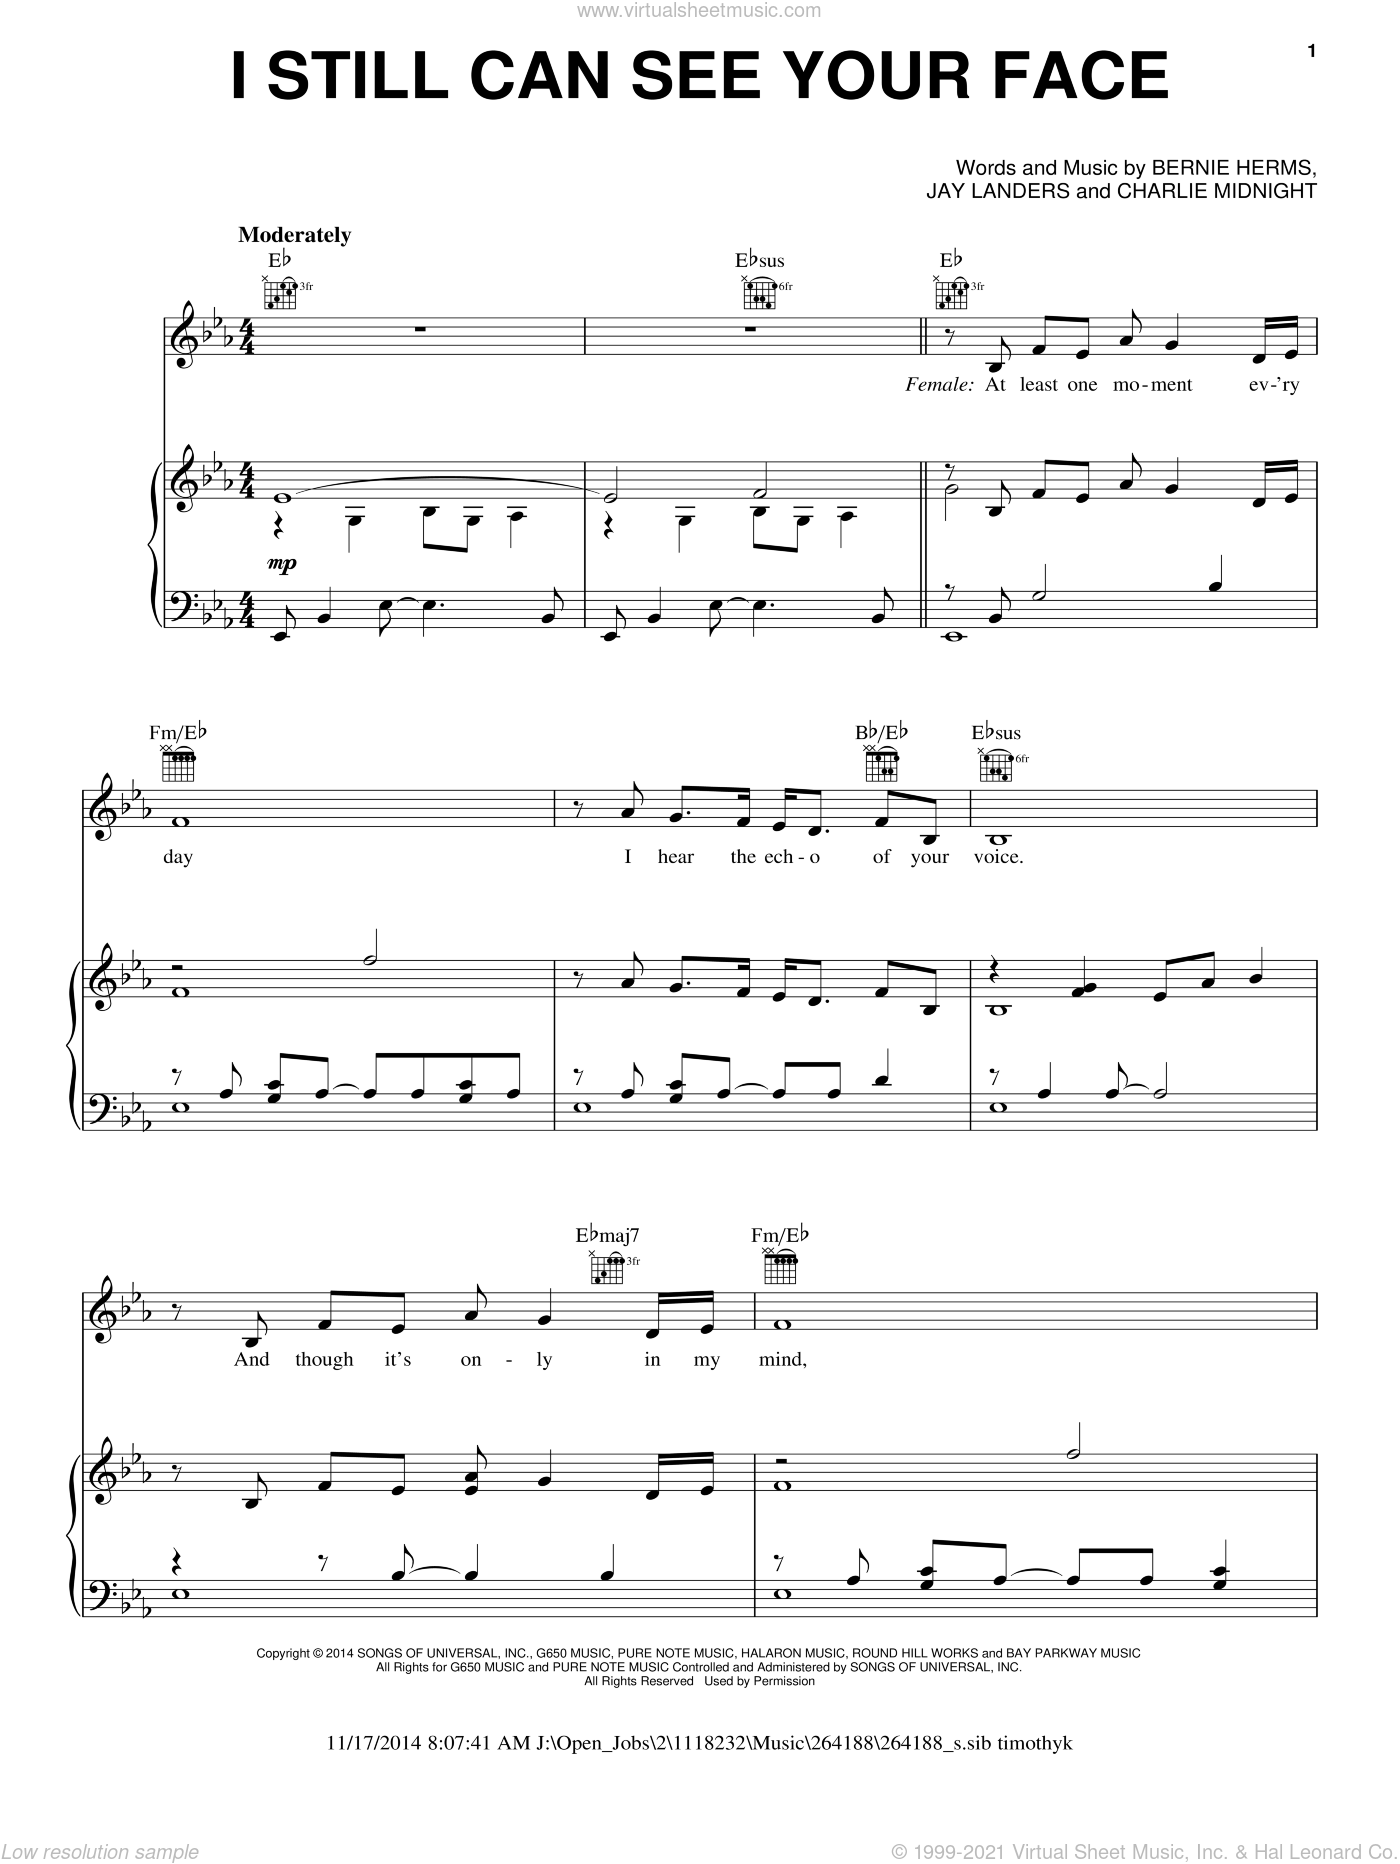 I Still Can See Your Face sheet music for voice, piano or guitar by Barbara Streisand, Barbra Streisand and Andrea Bocelli, Bernie Herms, Charlie Midnight and Jay Landers, intermediate skill level